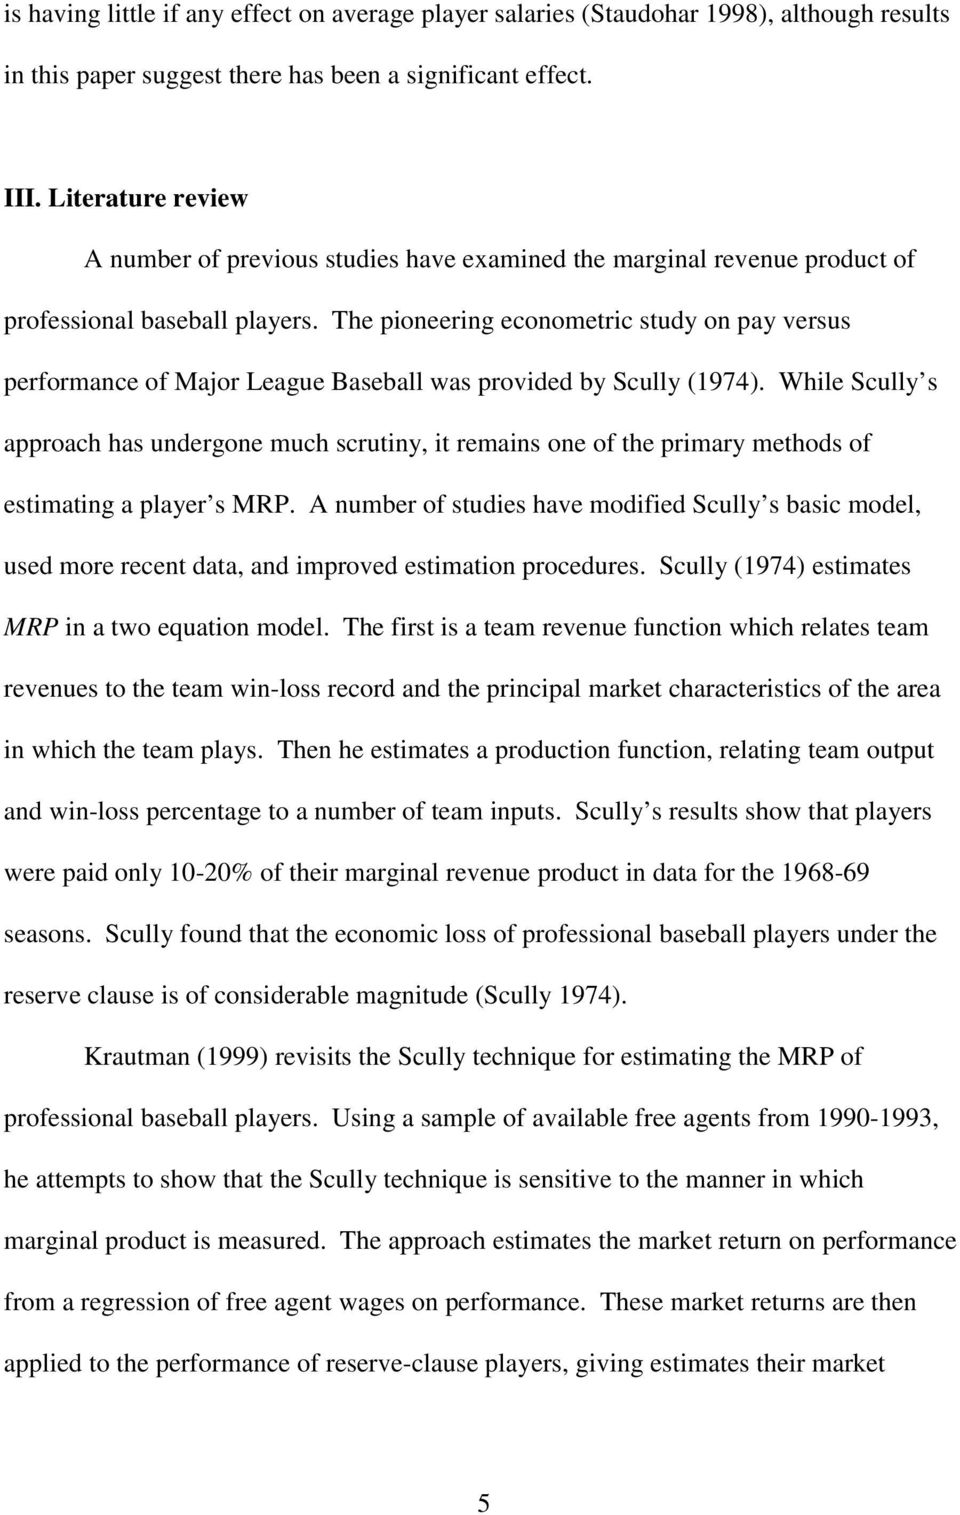 The pioneering econometric study on pay versus performance of Major League Baseball was provided by Scully (1974).